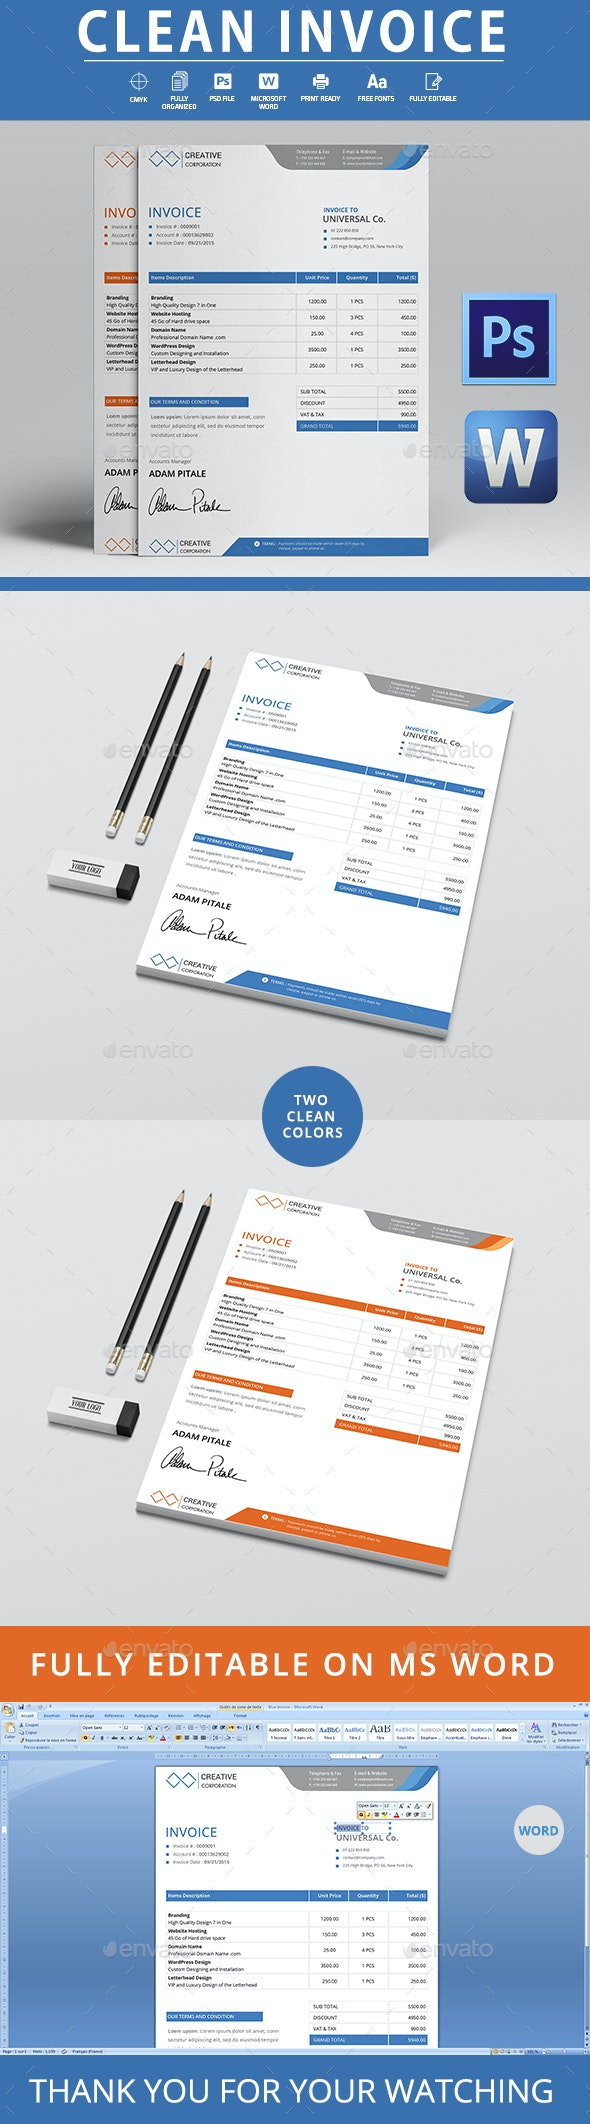 Invoice - Invoice Template - Proposals & Invoices Stationery